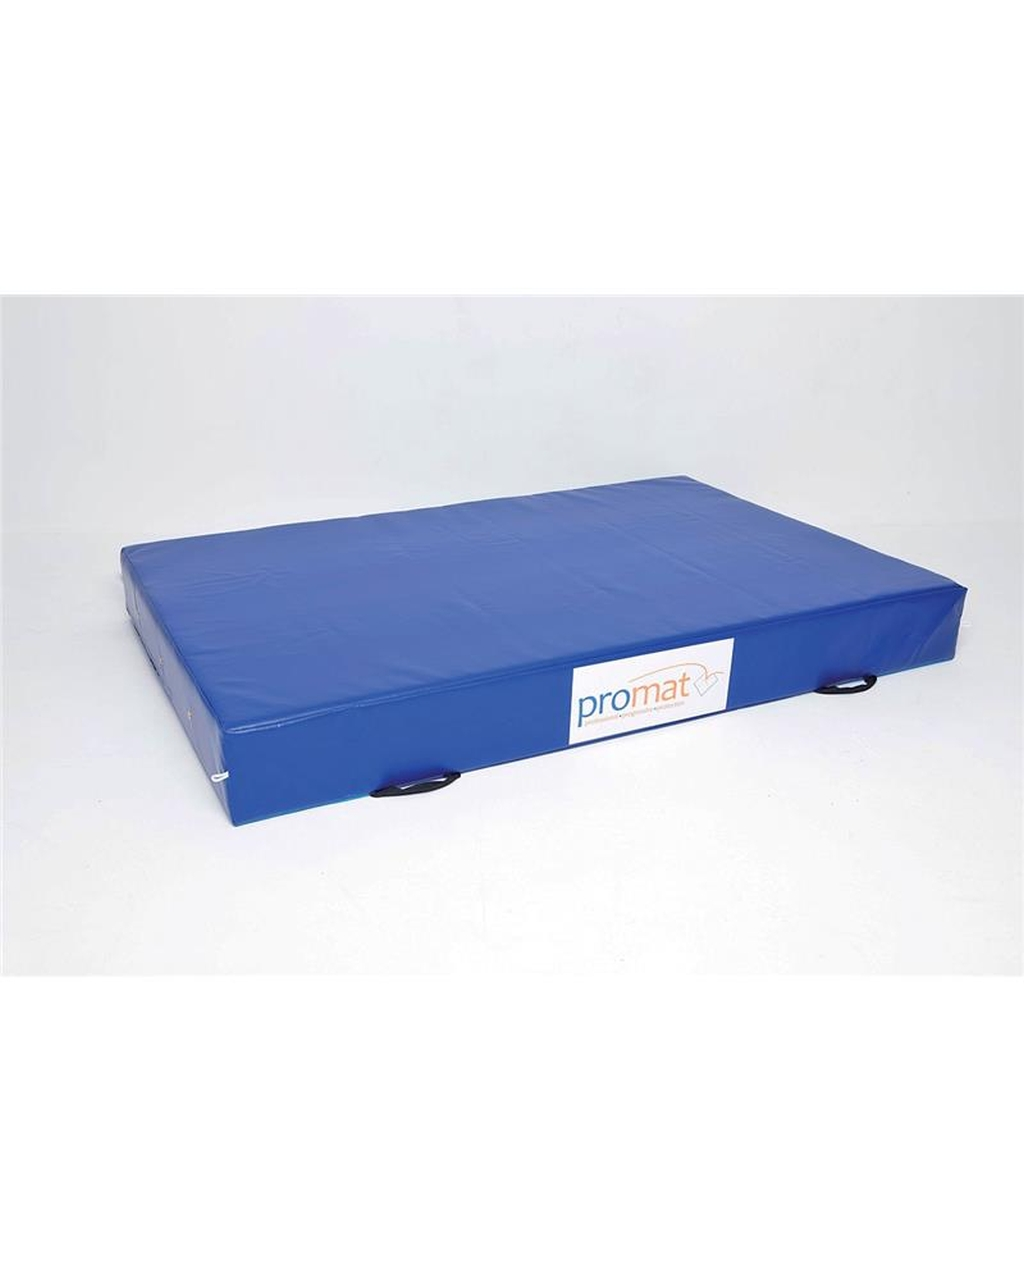 CRASH MAT 3.5M X 1.52M X 300MM